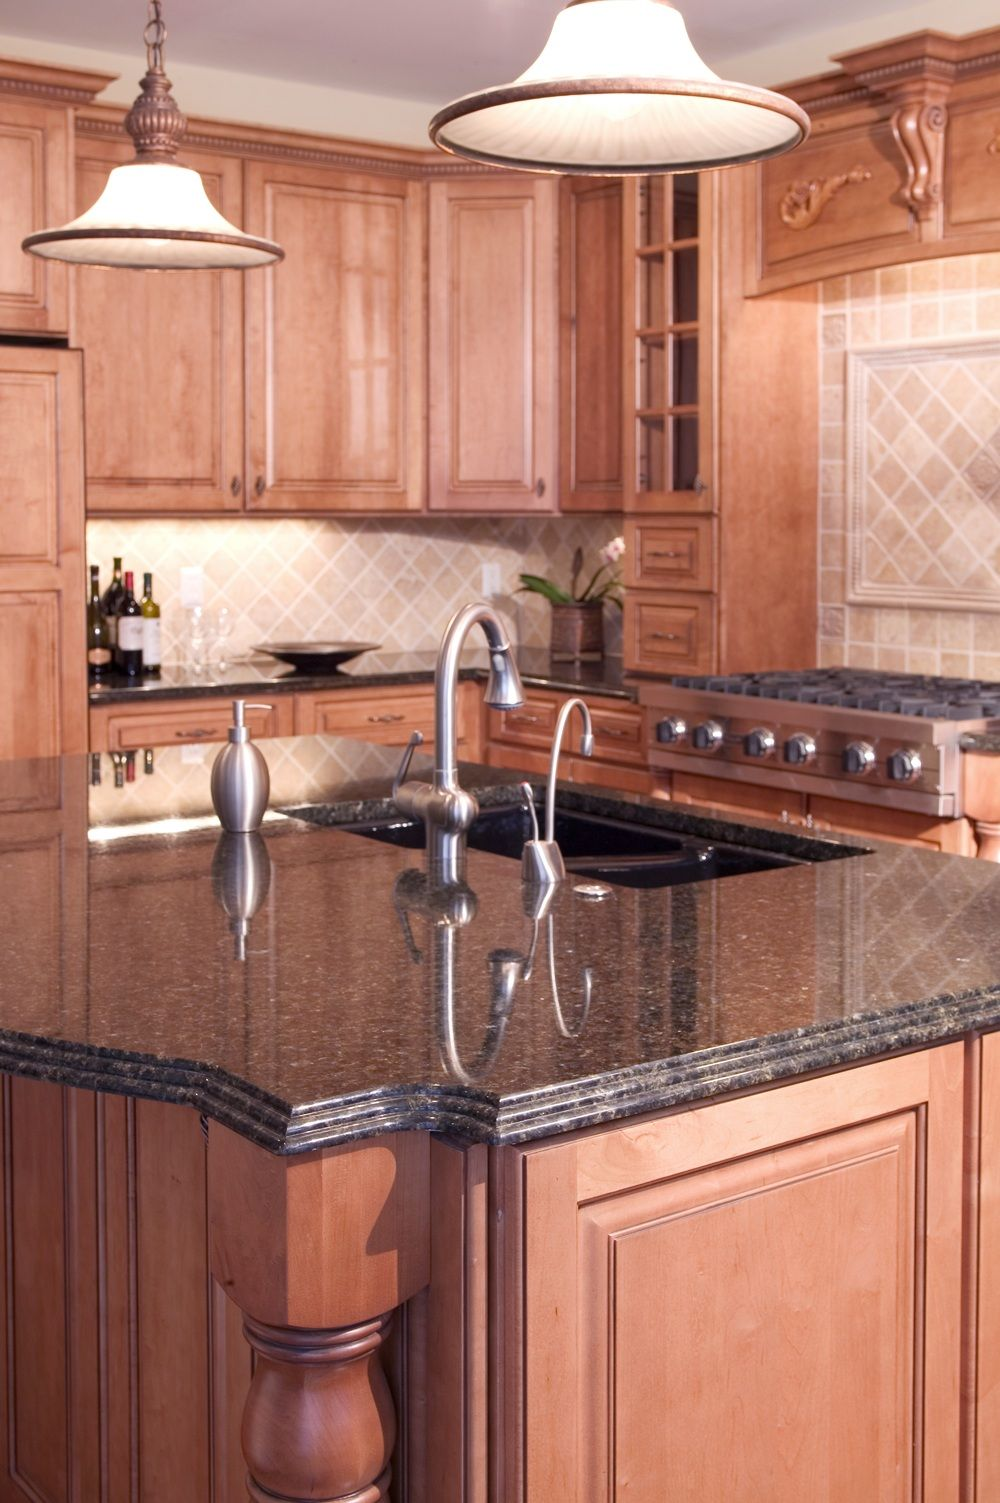 Granite Countertops Colors With White Cabinets : kitchen cabinets and countertops beige granite countertop colors ...